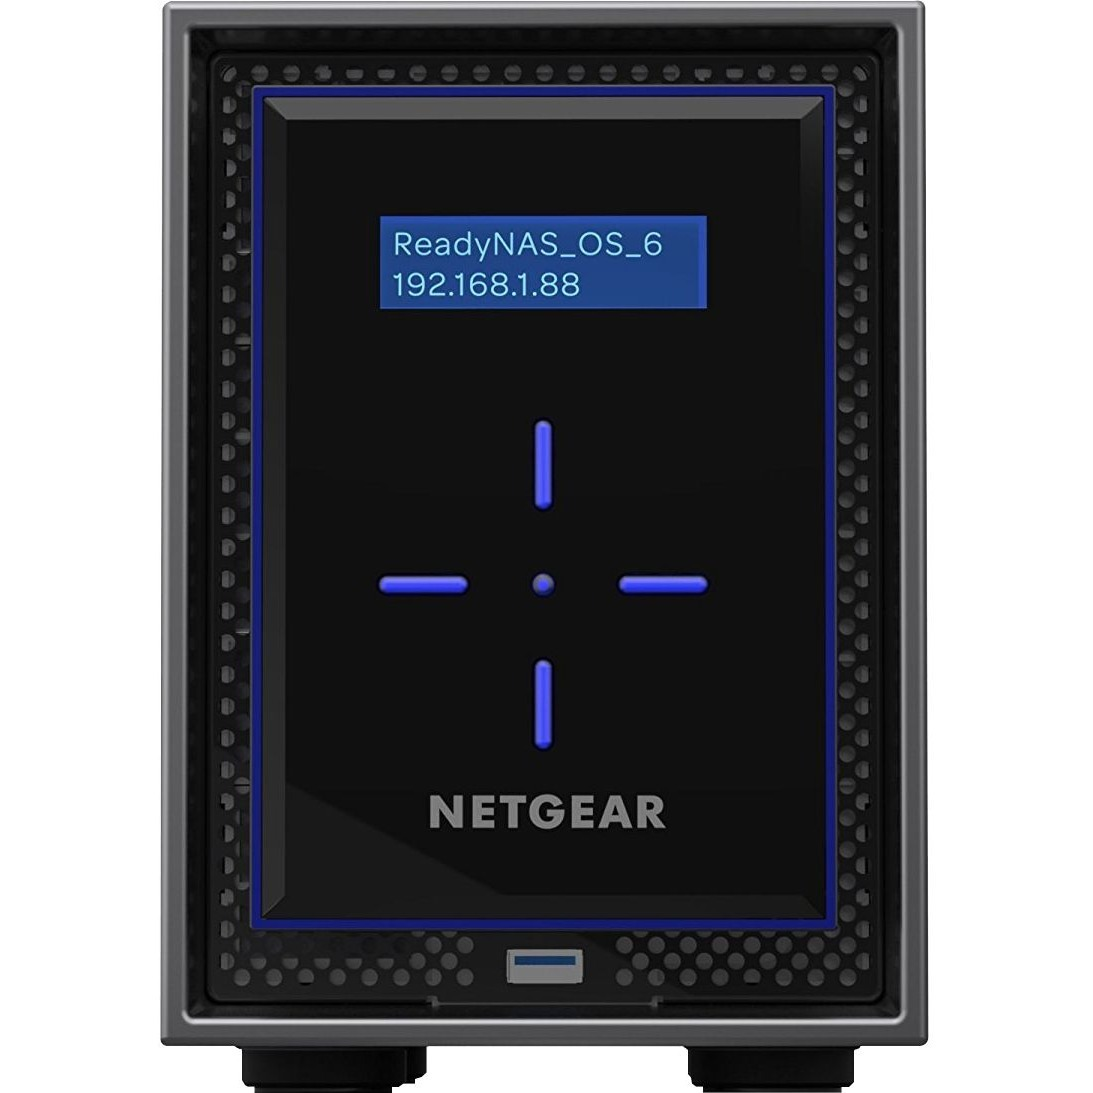 Netgear ReadyNAS RN422 2 x Total Bays SAN/NAS Server - Desktop